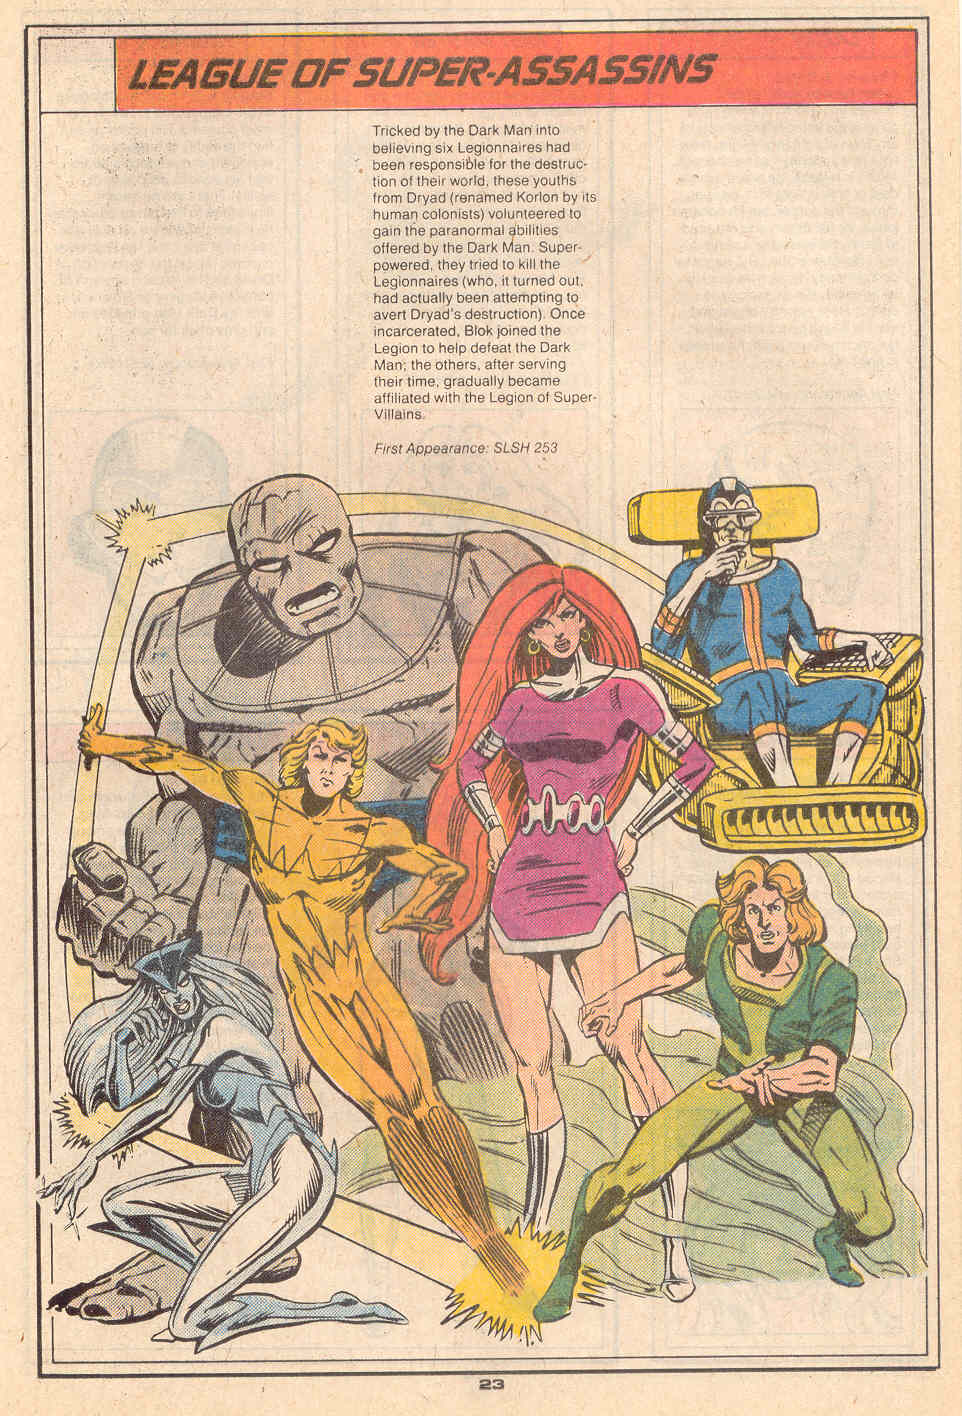 League of Super-Assassins by Grant Miehm - Who's Who in the Legion of Super-Heroes #3